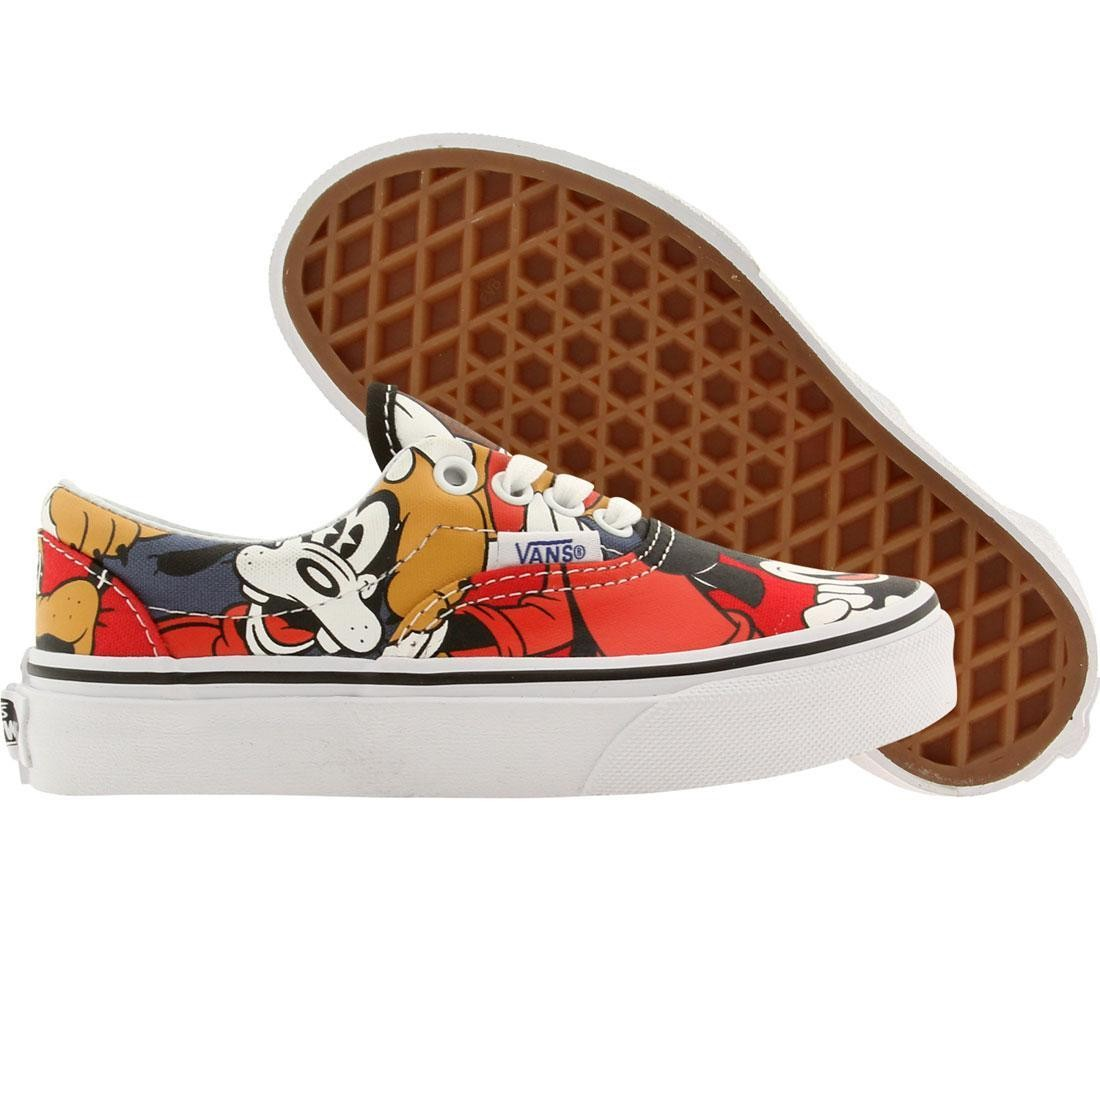 7a44306a88e8b5 Vans x Disney Little Kids Era - Mickey   Friends black red